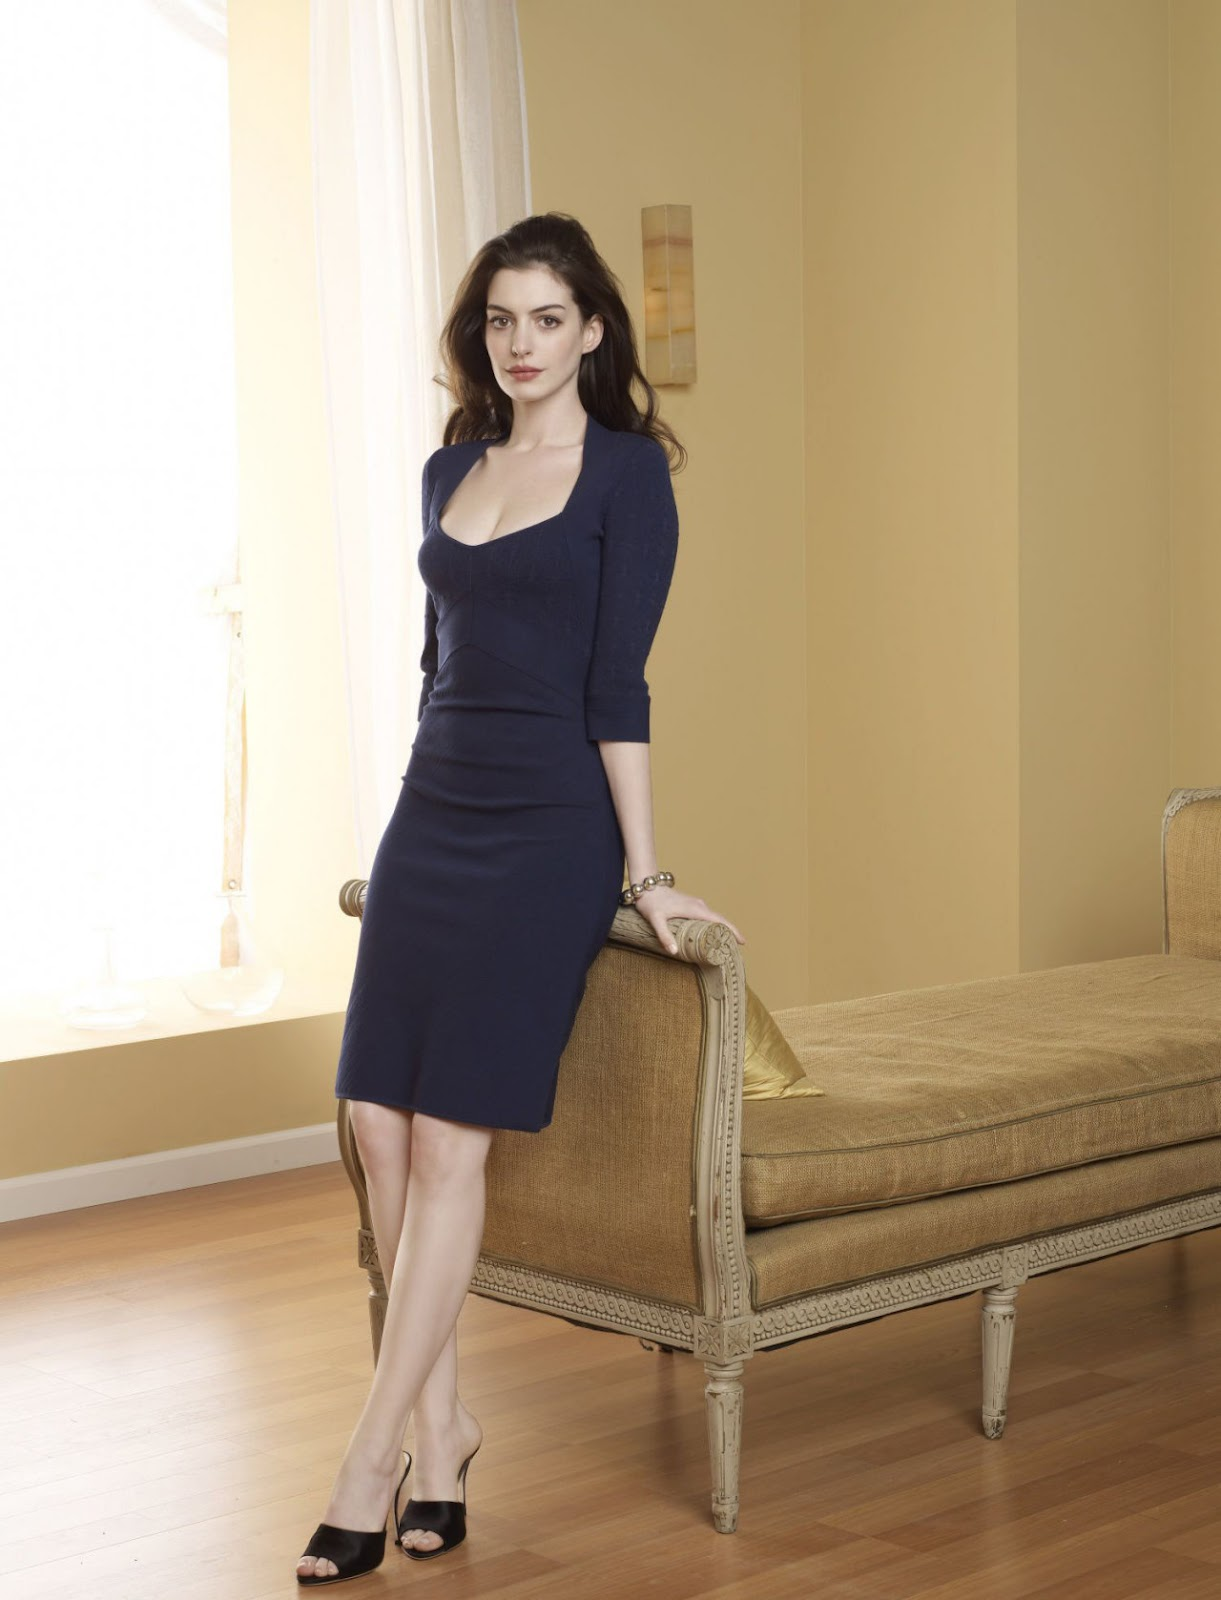 Anne Hathaway Pictures Gallery 19  Film Actresses-7378